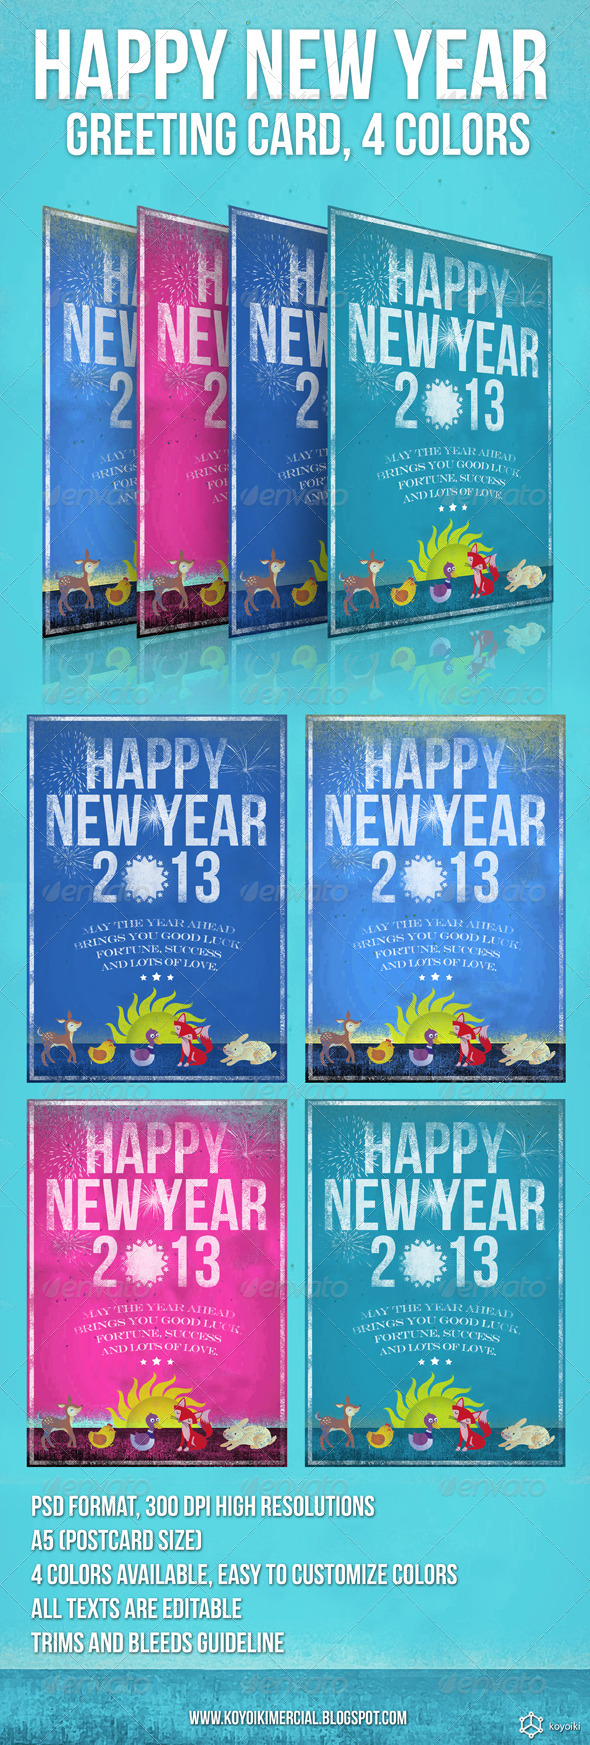 New Year Greeting Card - Holiday Greeting Cards